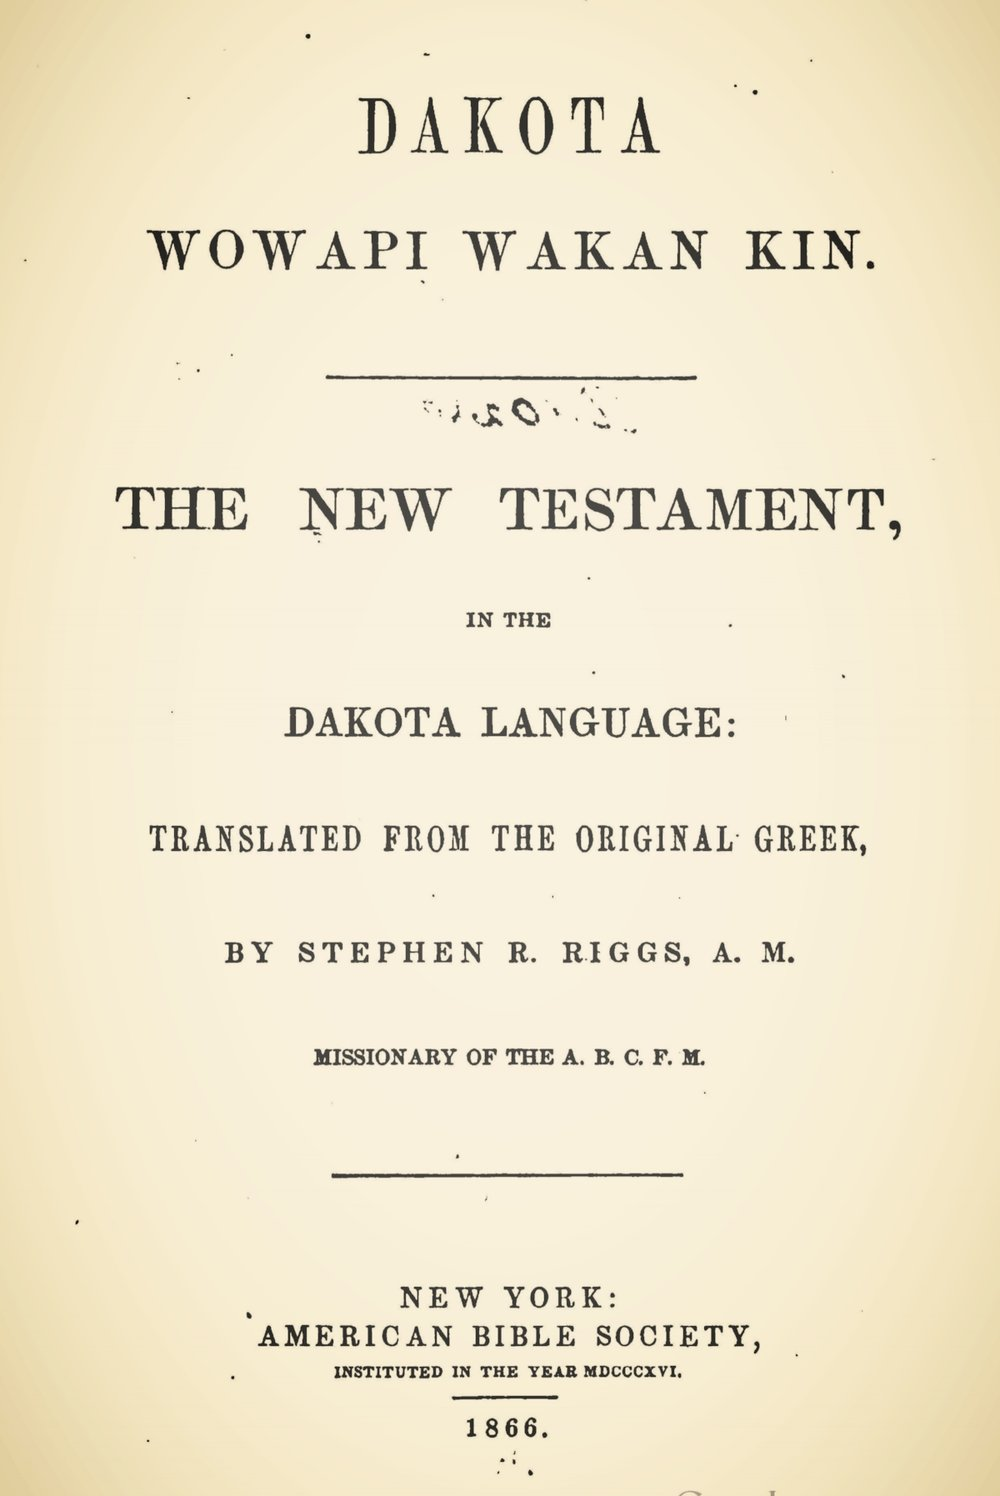 Riggs, Stephen Return, Dakota Wowapi Wakan Kin The New Testament, in the Dakota Language Title Page.jpg